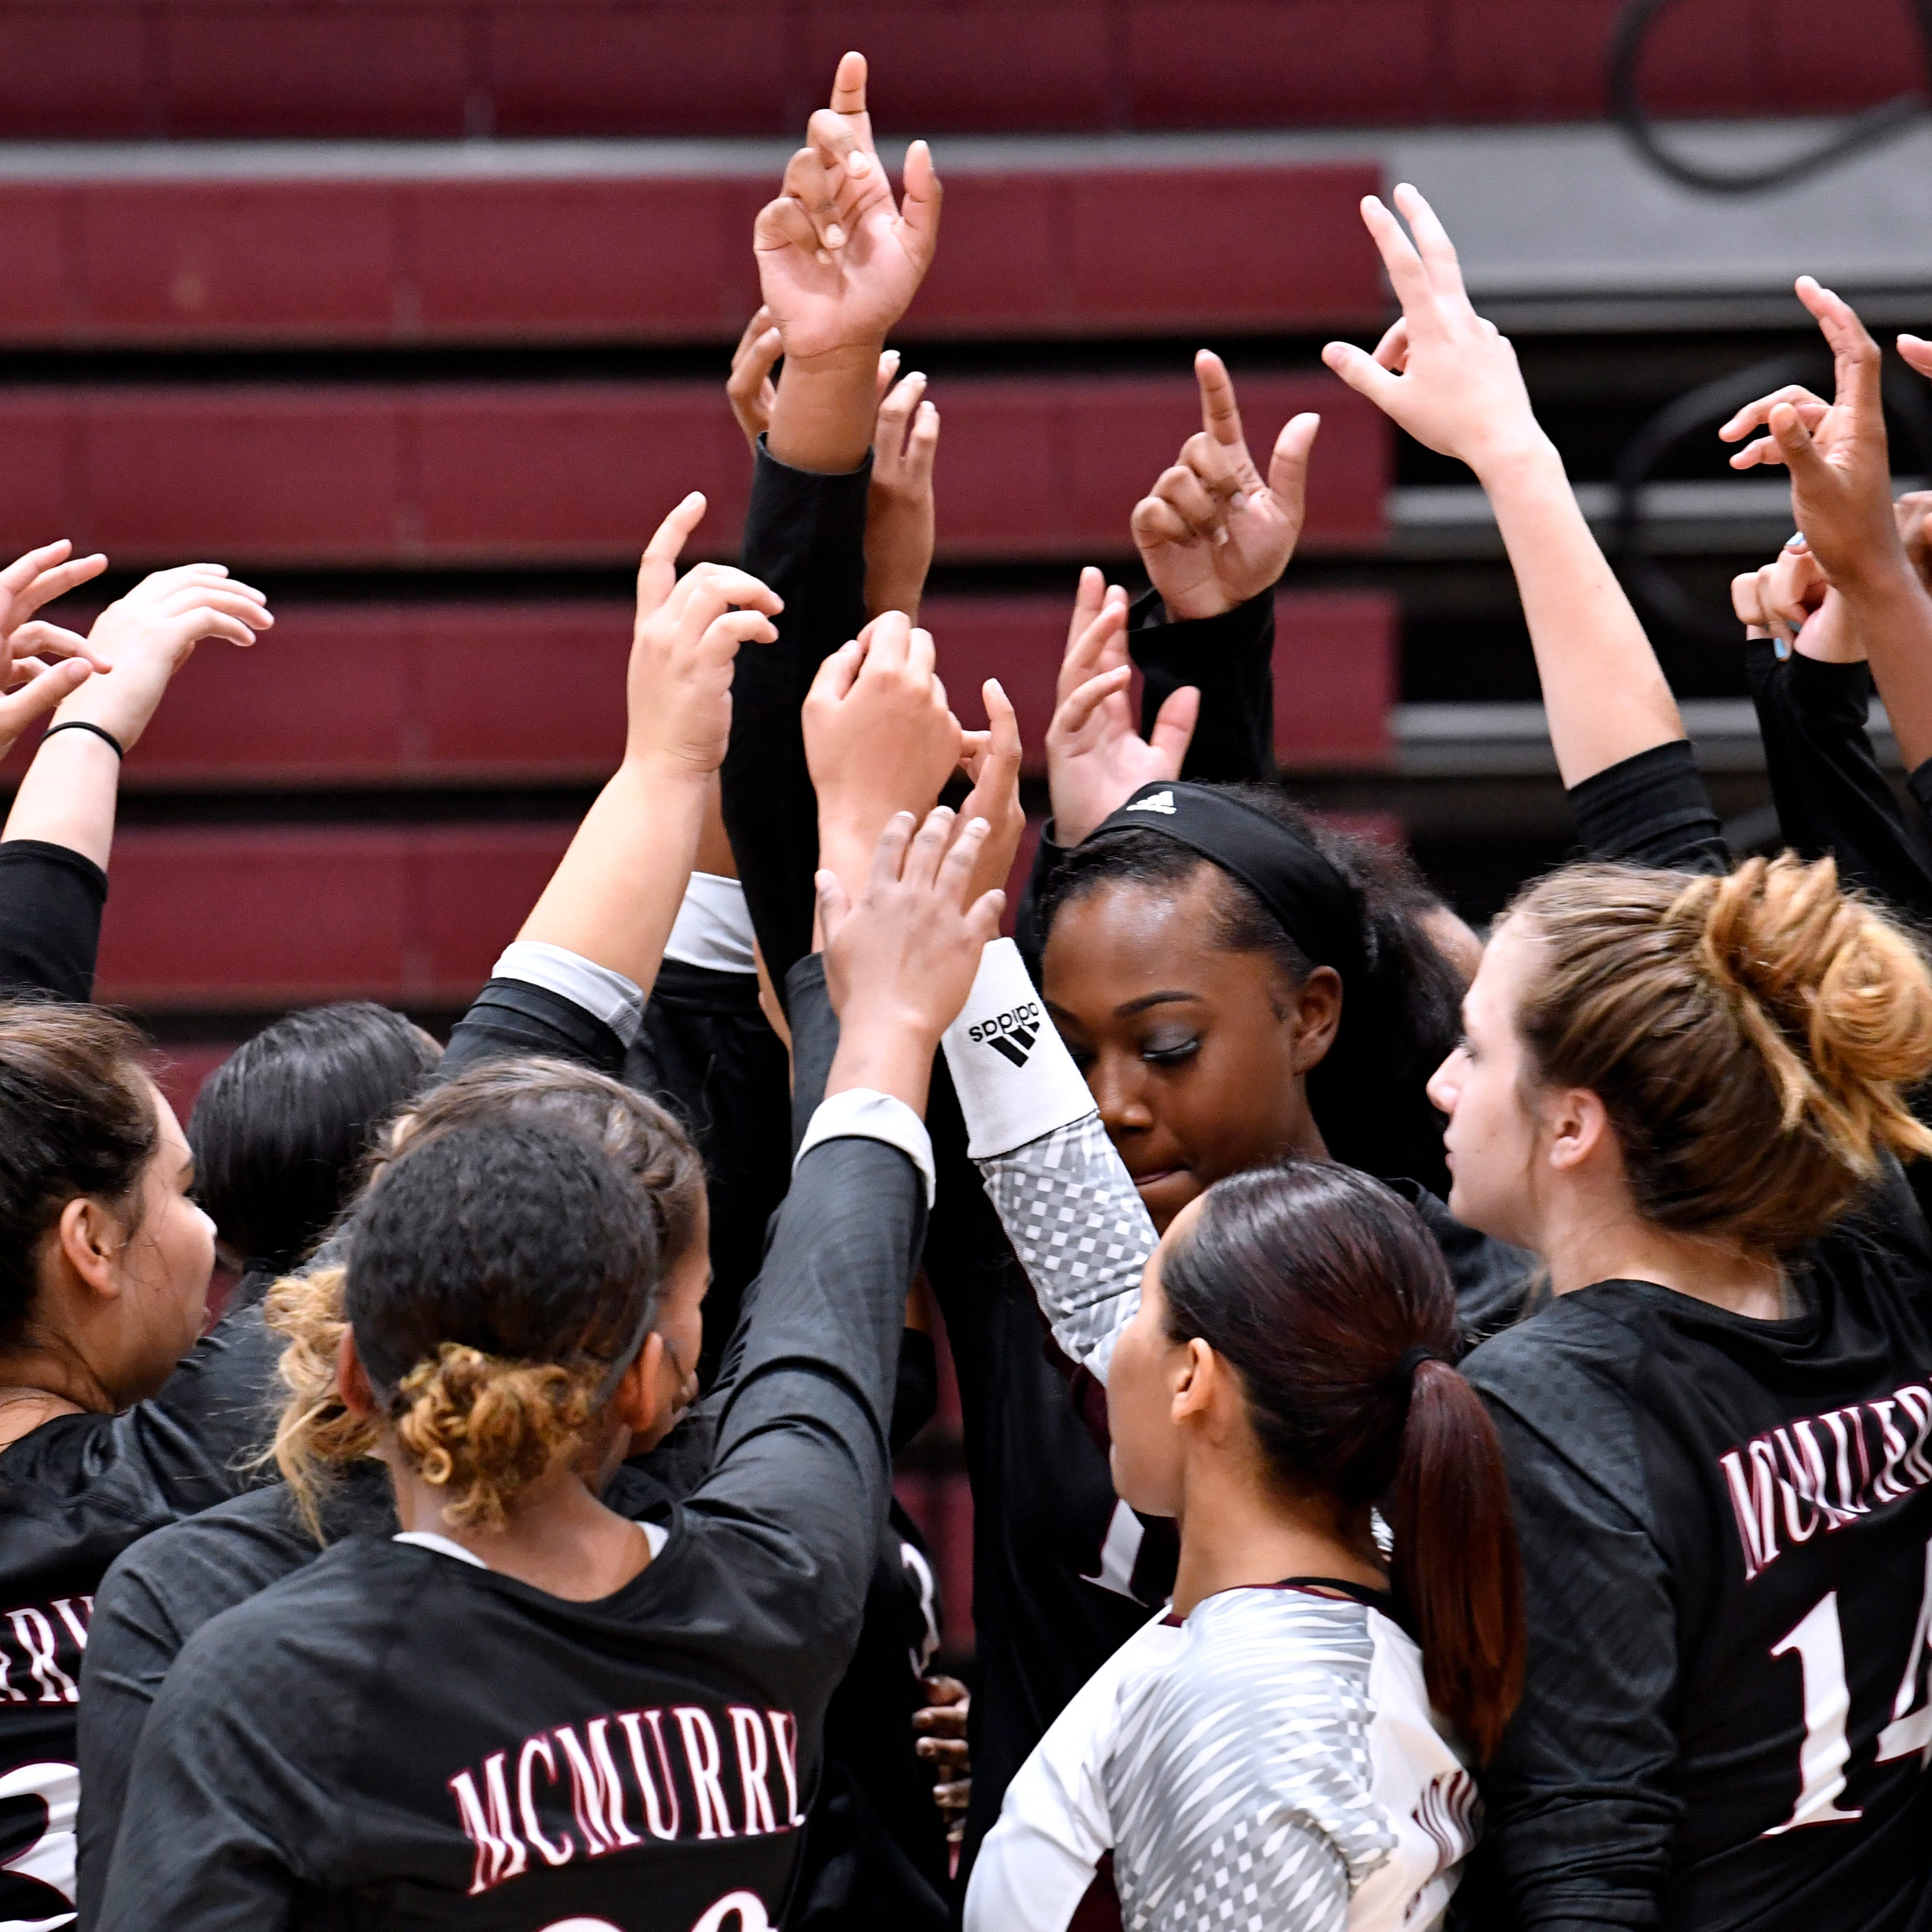 McMurry volleyball team breaking racial barriers